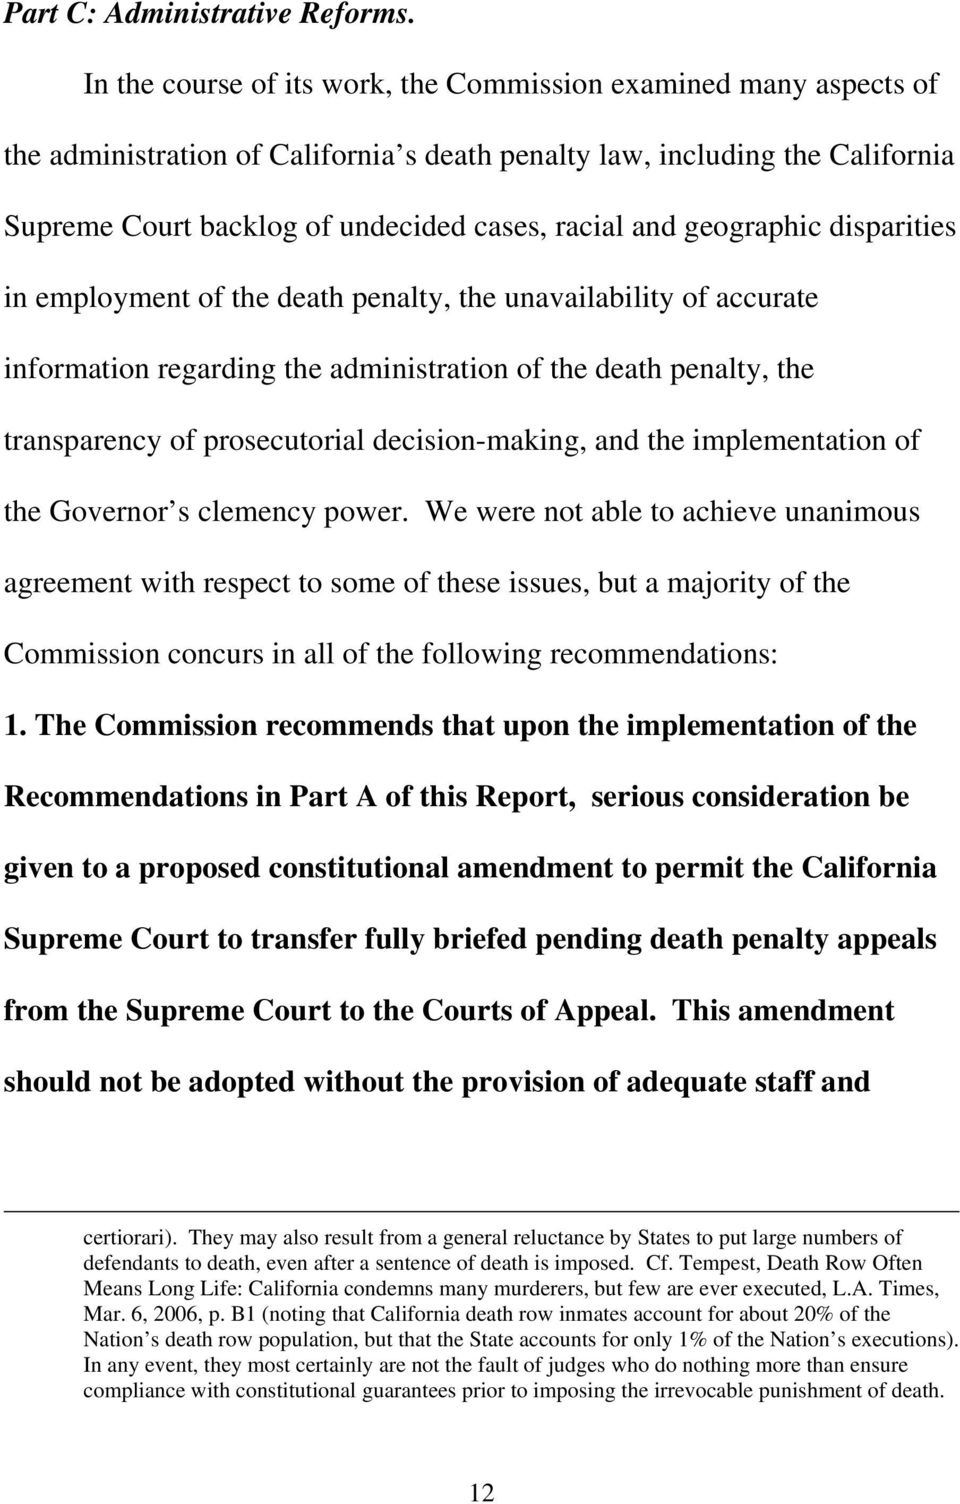 geographic disparities in employment of the death penalty, the unavailability of accurate information regarding the administration of the death penalty, the transparency of prosecutorial